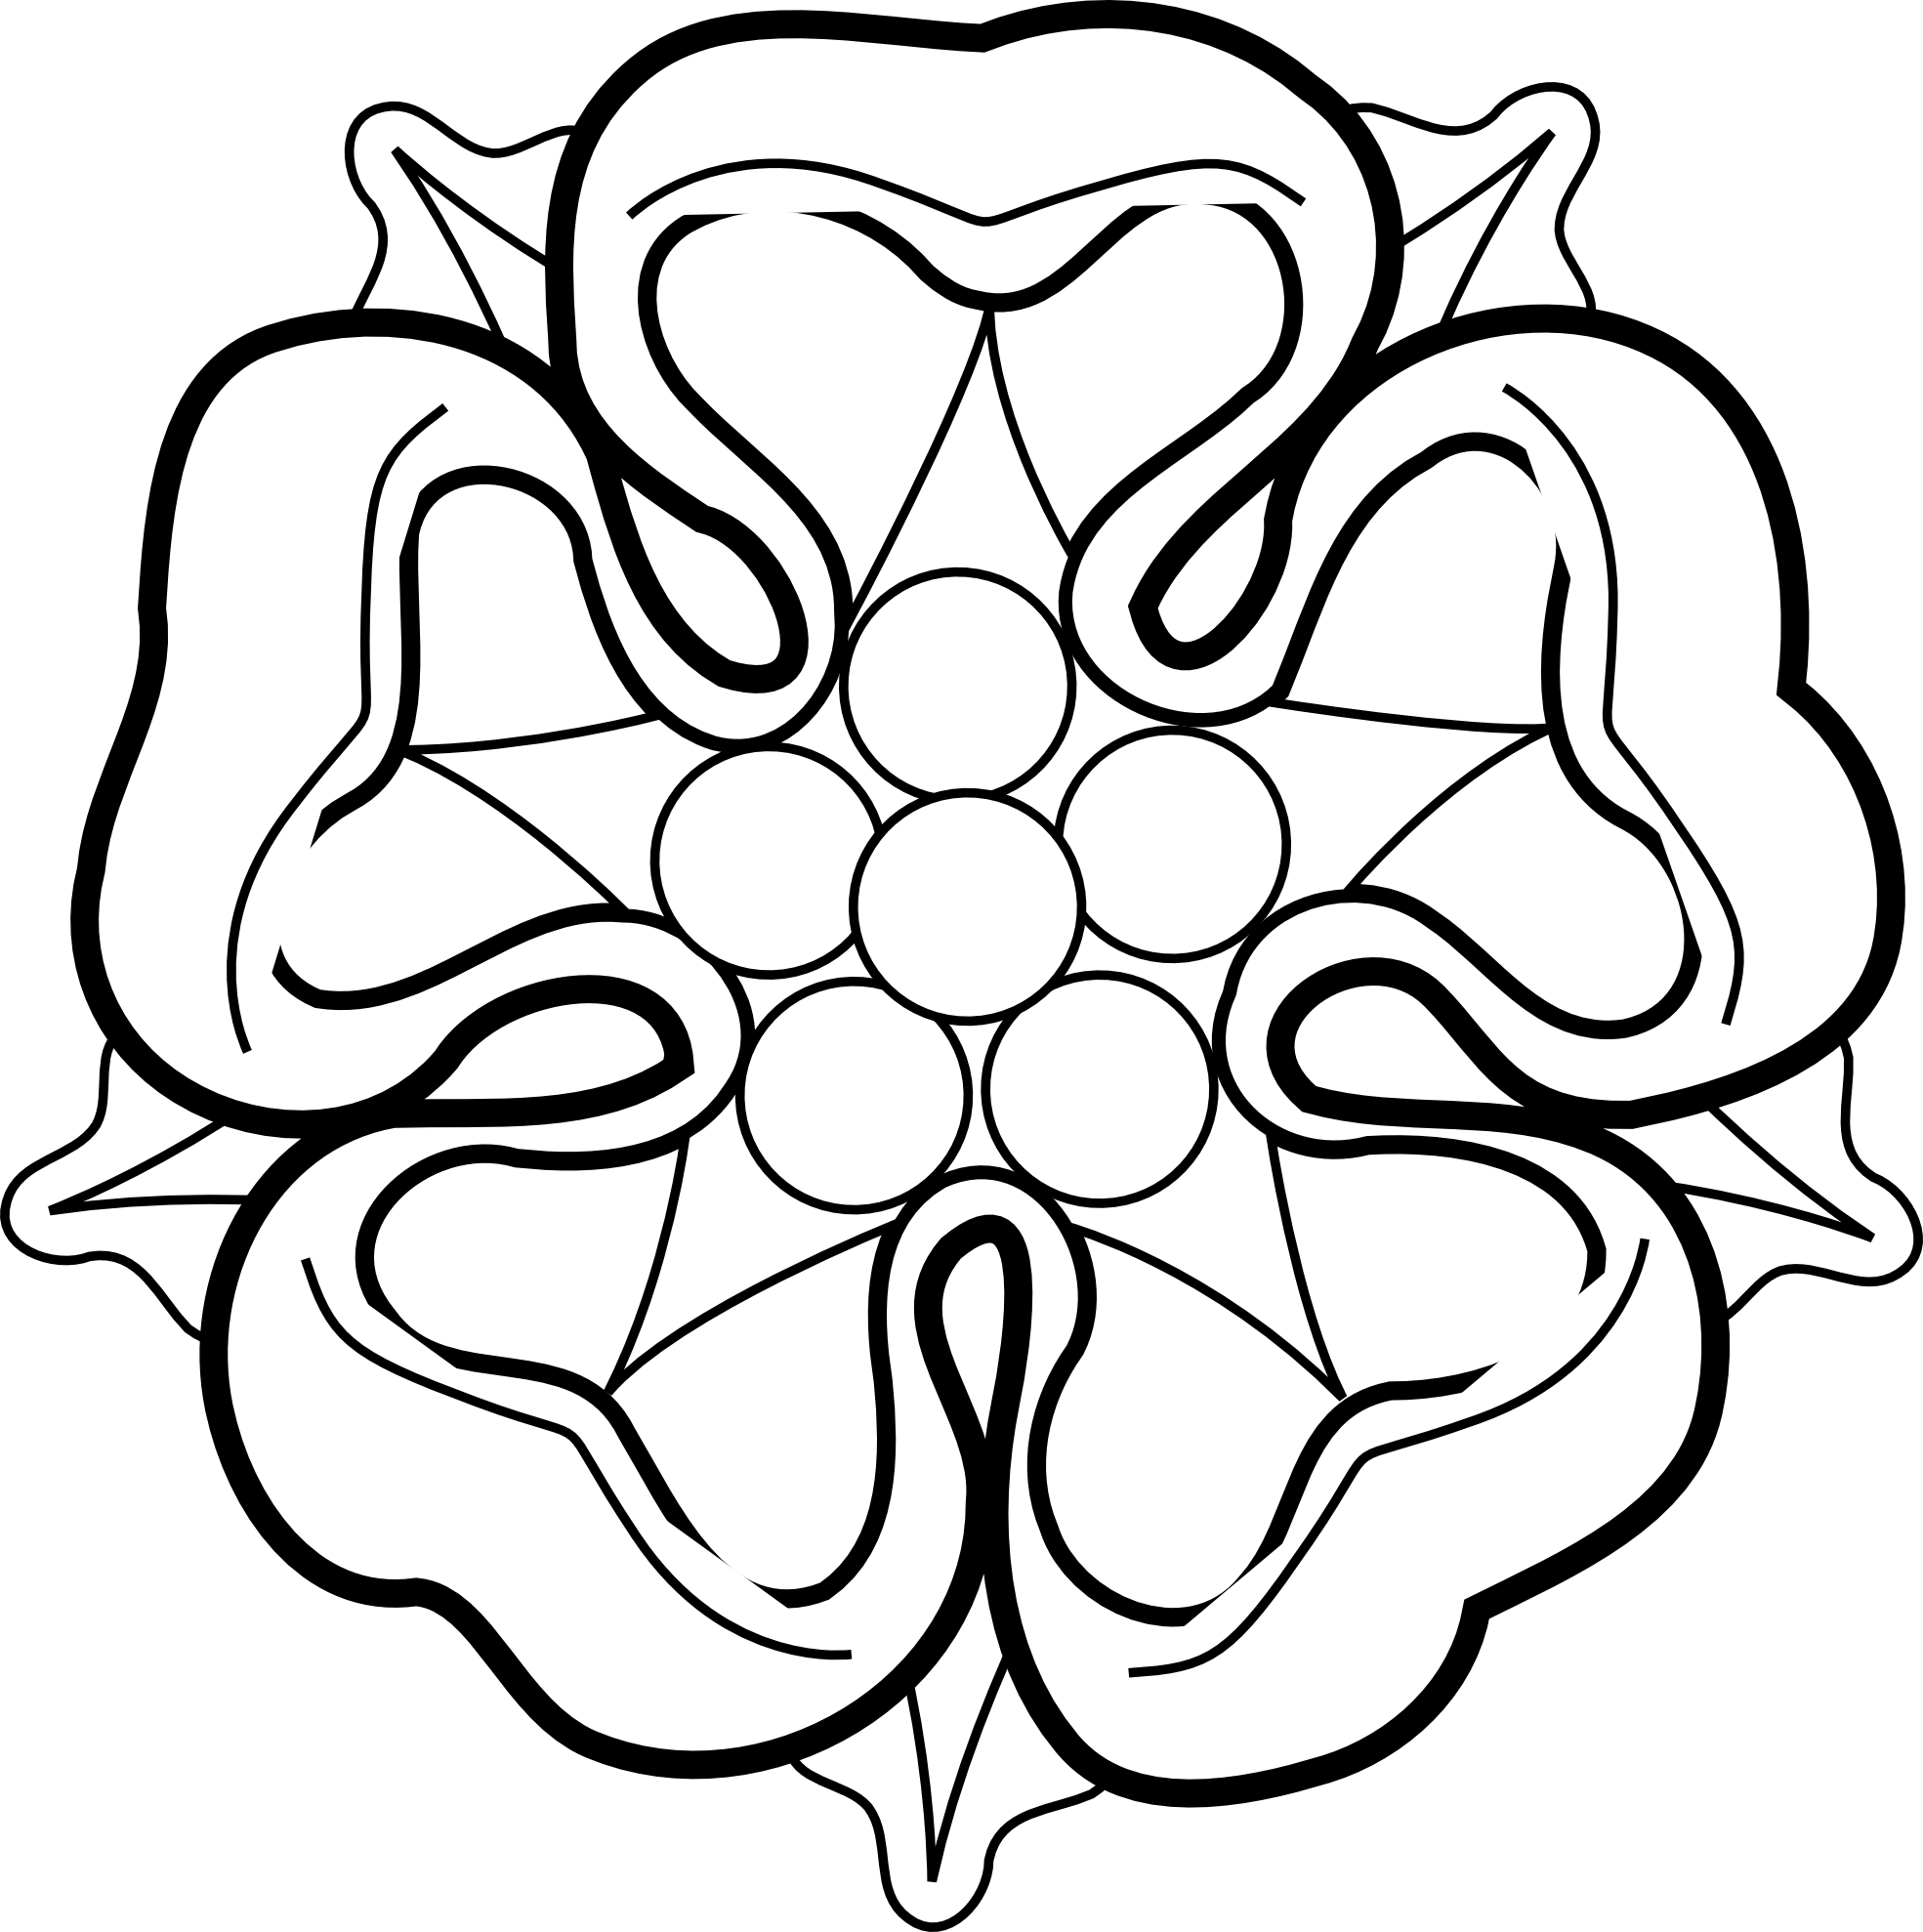 Black And White Rose Drawings.